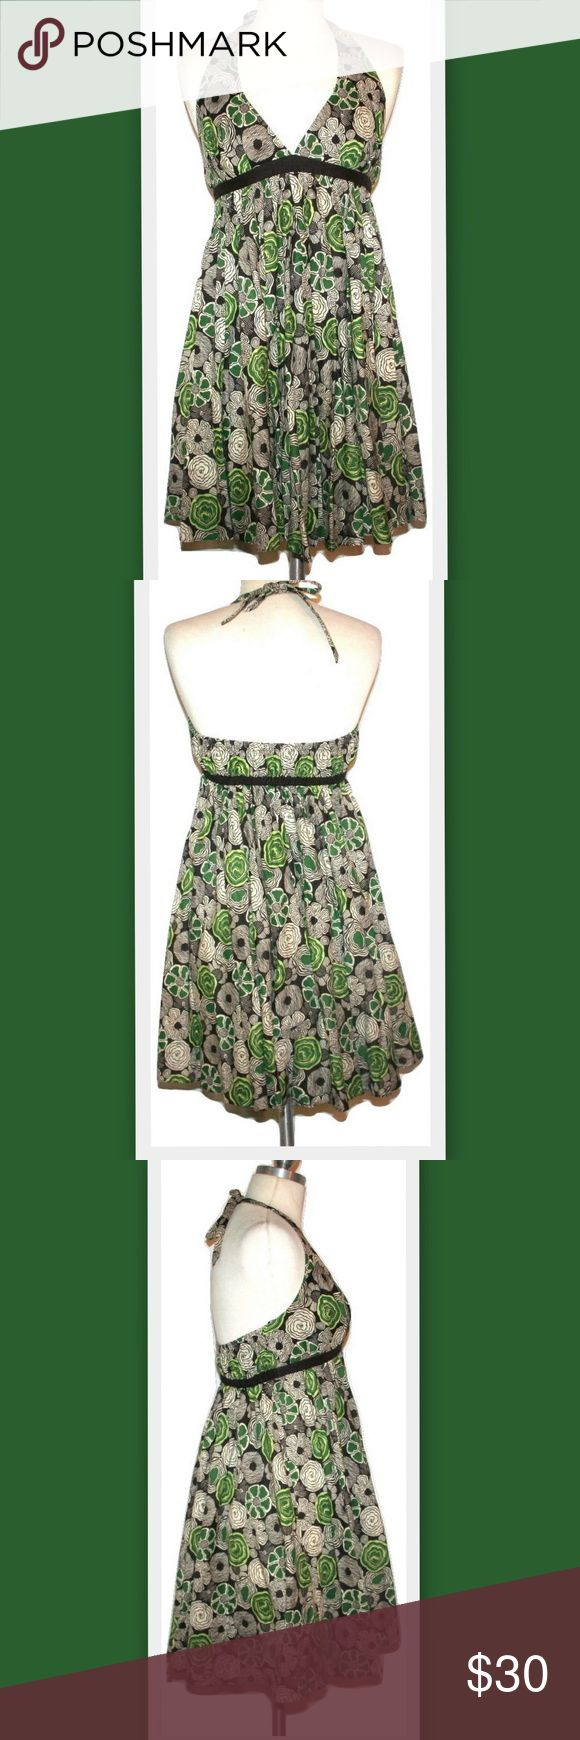 """Susana Monaco Babydoll Cotton Halter Dress Susana Monaco dress.  Halter style with an empire waist.  Extra full forgiving skirt, could easily be worn as a maternity dress.  Ties at the neck.  Elasticized on the back.  Green, off-white and brown floral print.  Lined at the bust, skirt portion is unlined.  100% cotton  Marked size 4 Length from top of bust 29"""" Susana Monaco Dresses Backless"""